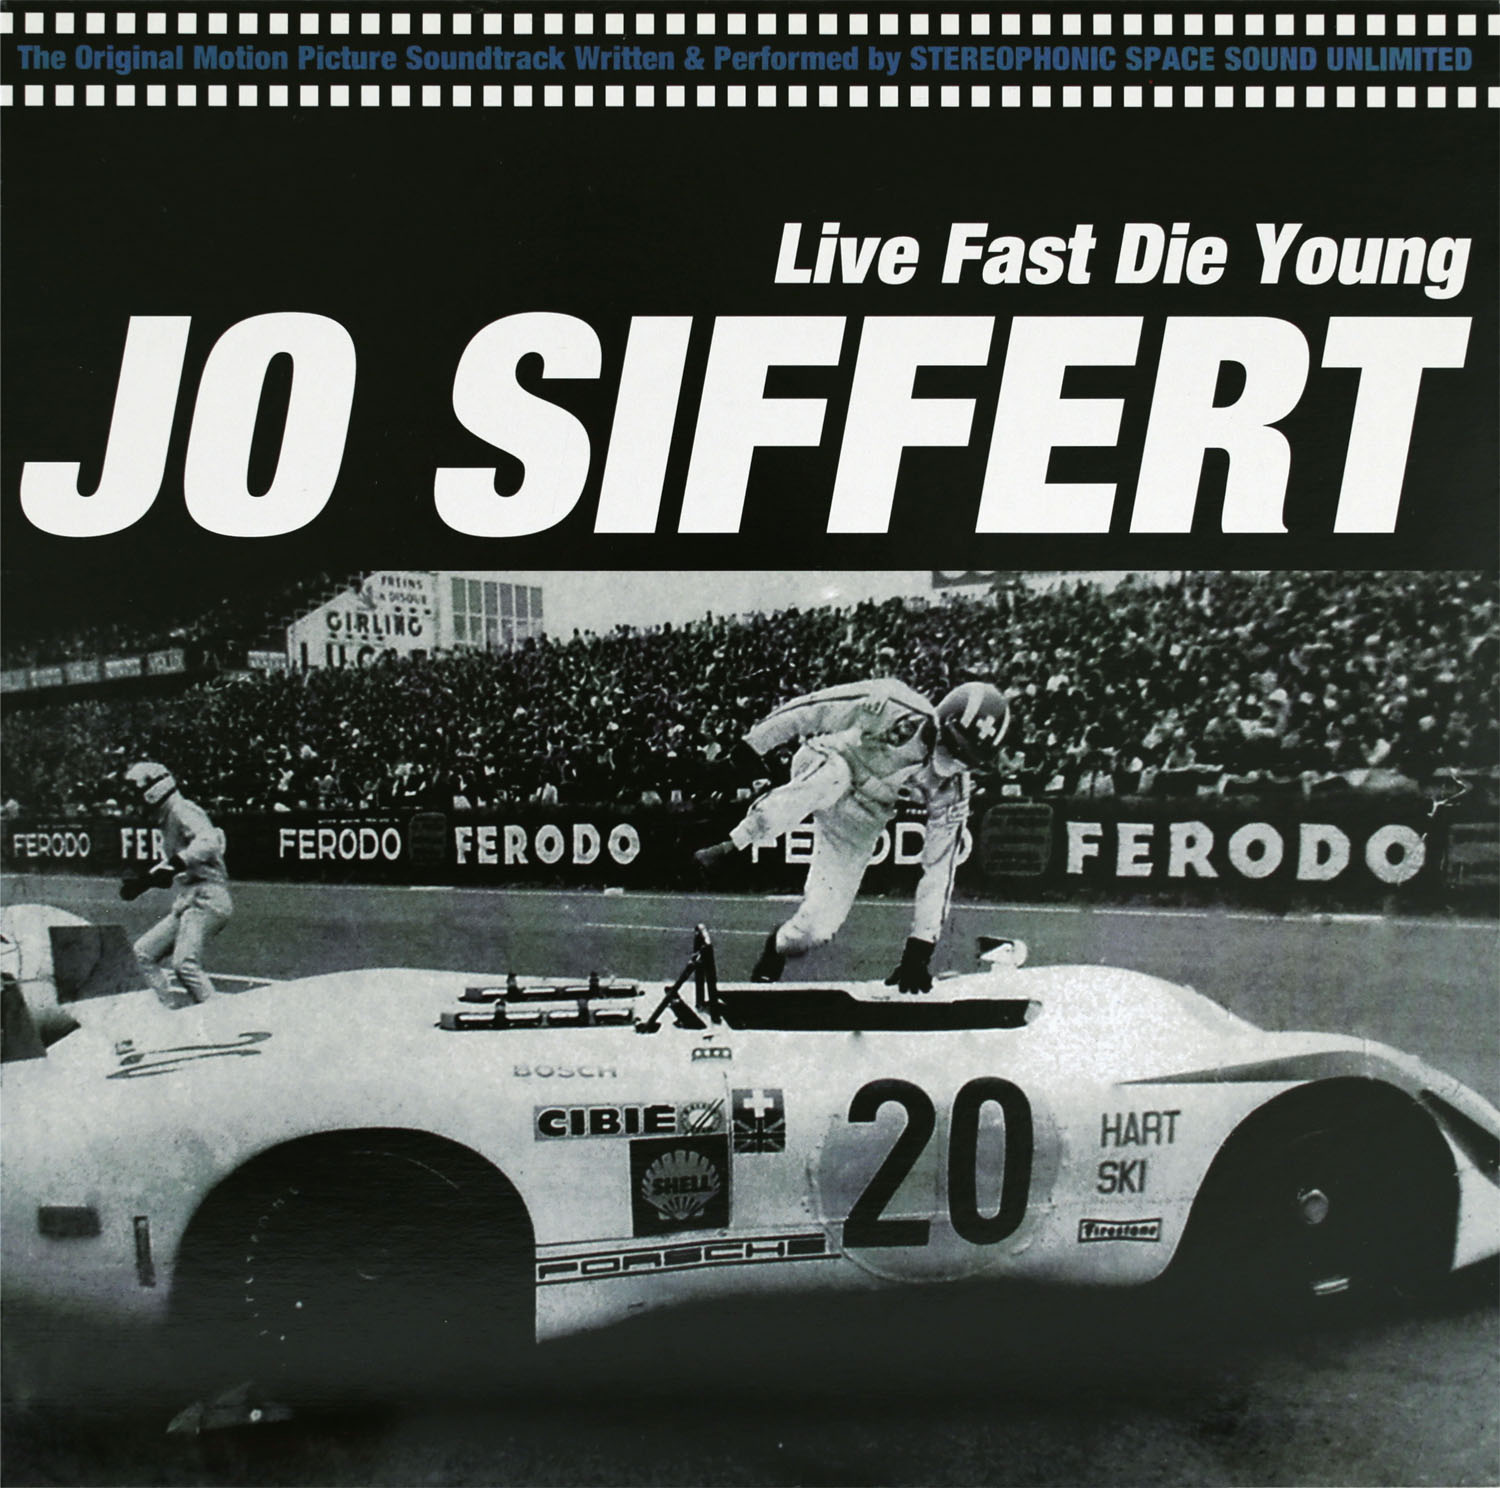 Stereophonic Space Sound Unlimited  Jo Siffert Live Fast Die Young